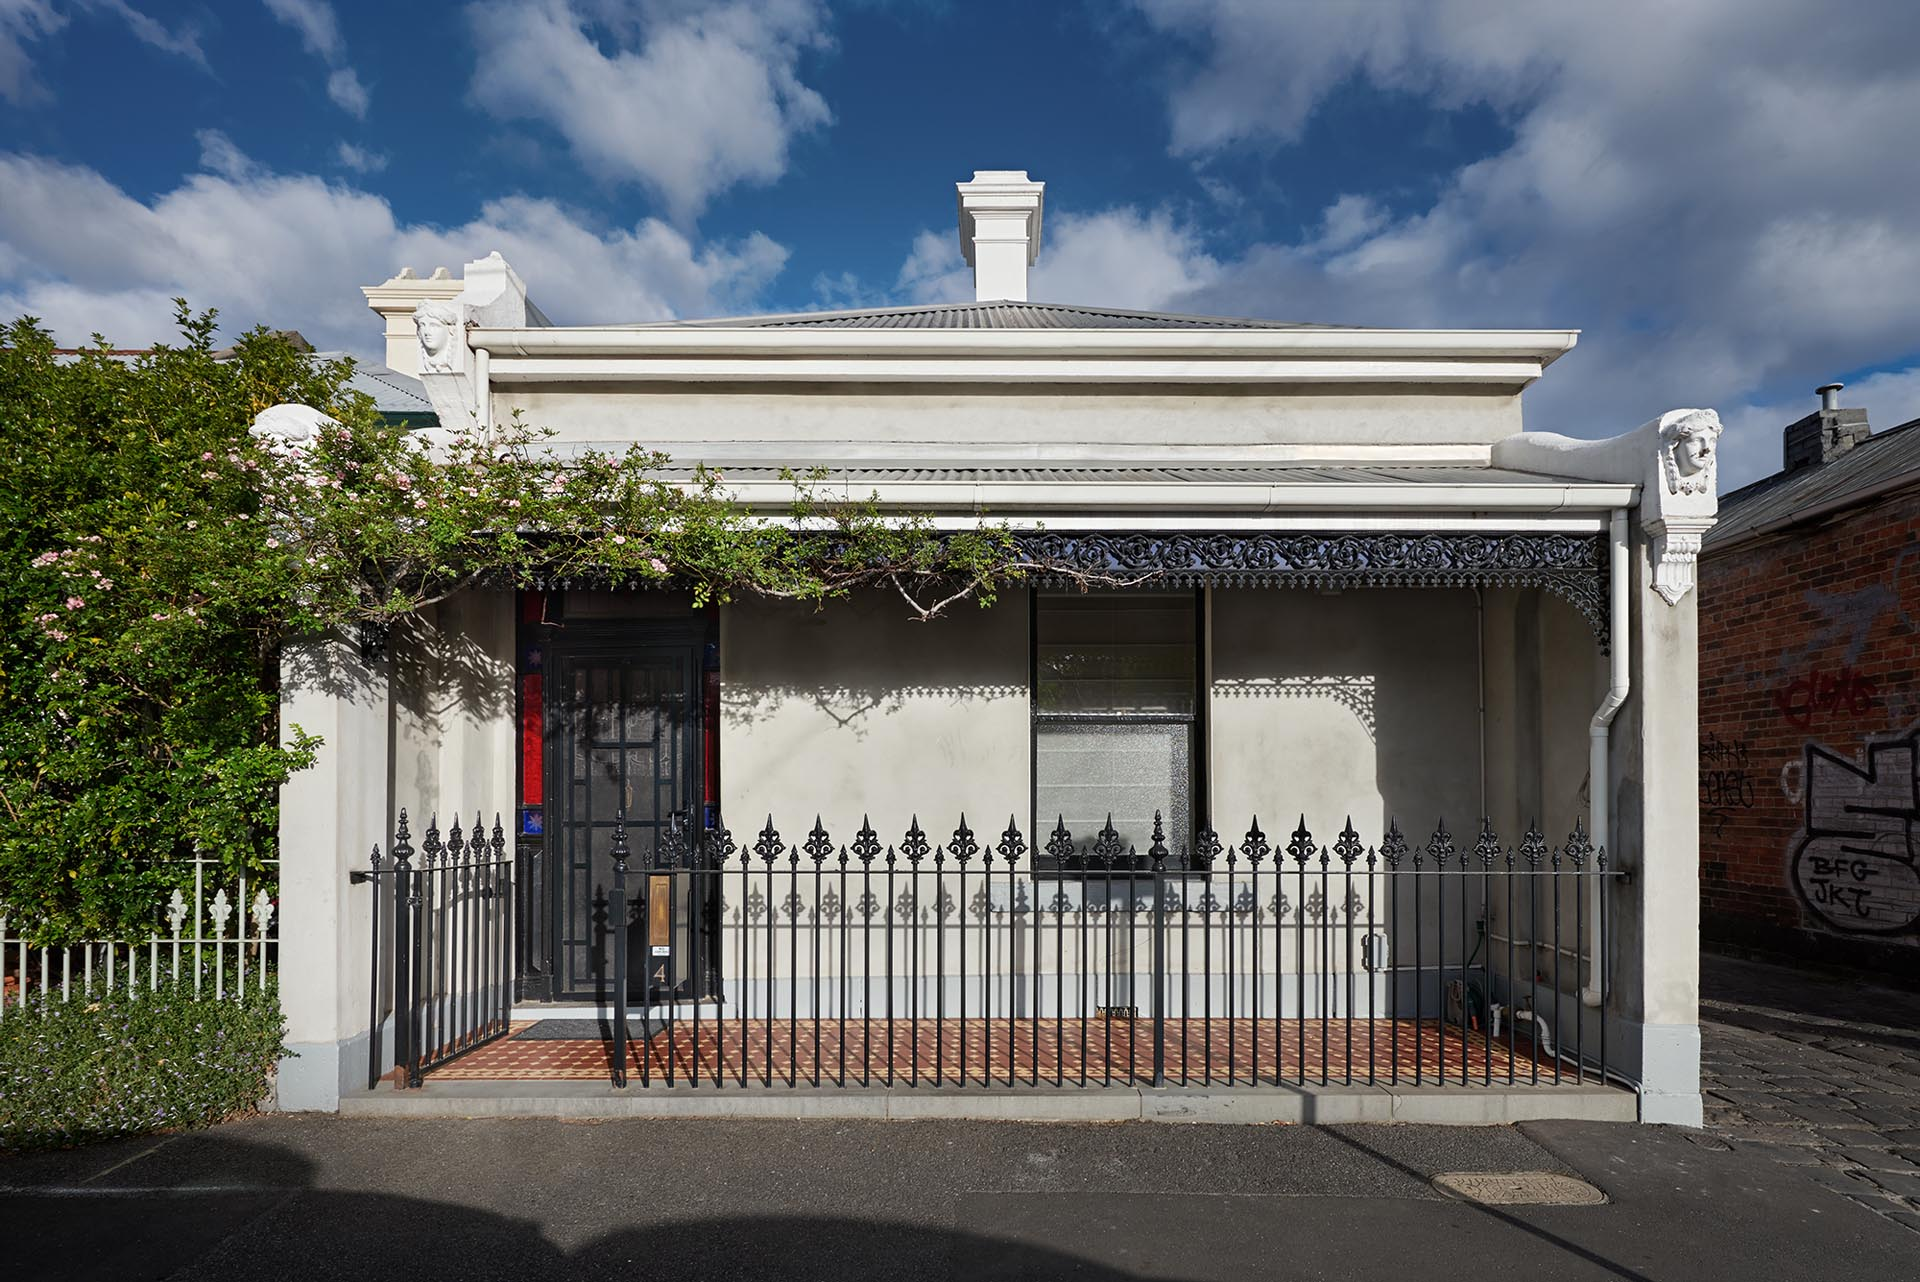 The home, located in Melbourne, Australia, has a traditional facade that includes ornate iron work and a small front porch.